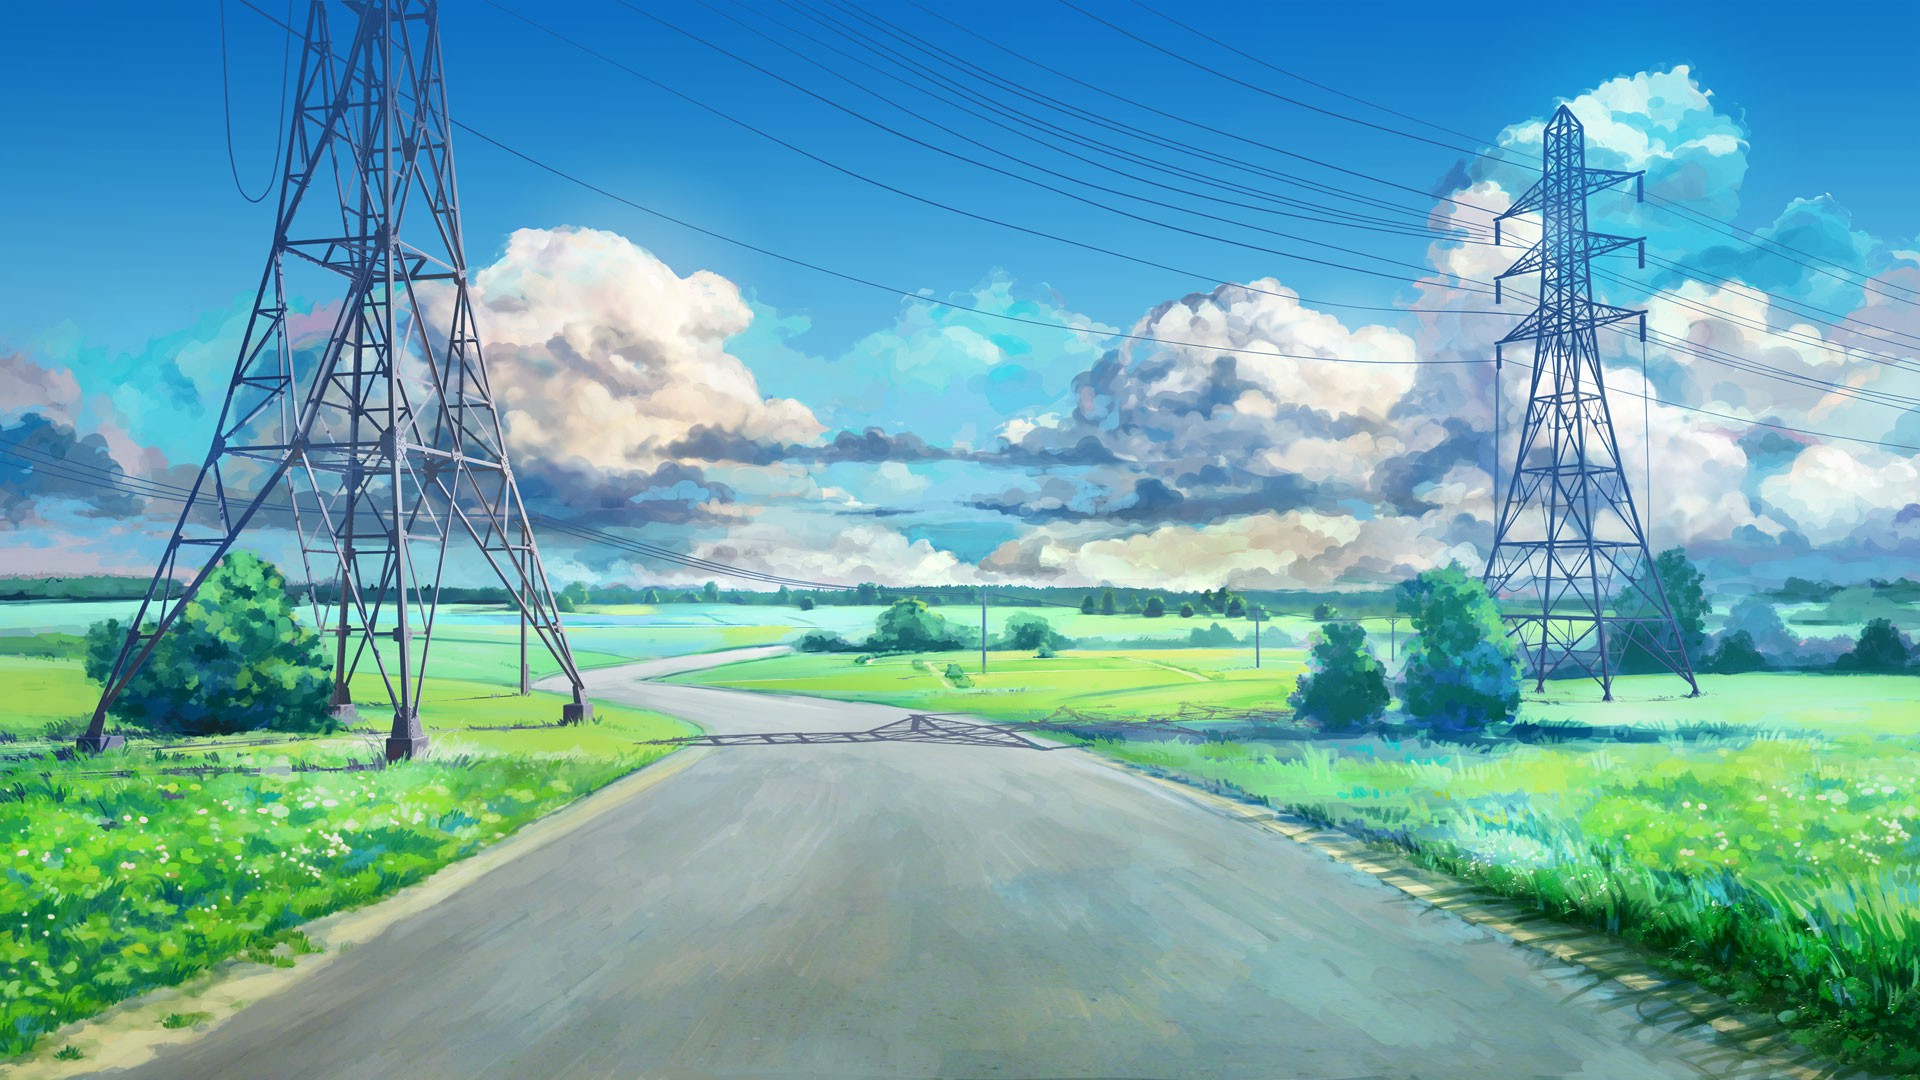 clouds Blue Green ArseniXC Anime Landscape Road Power Lines 1920x1080